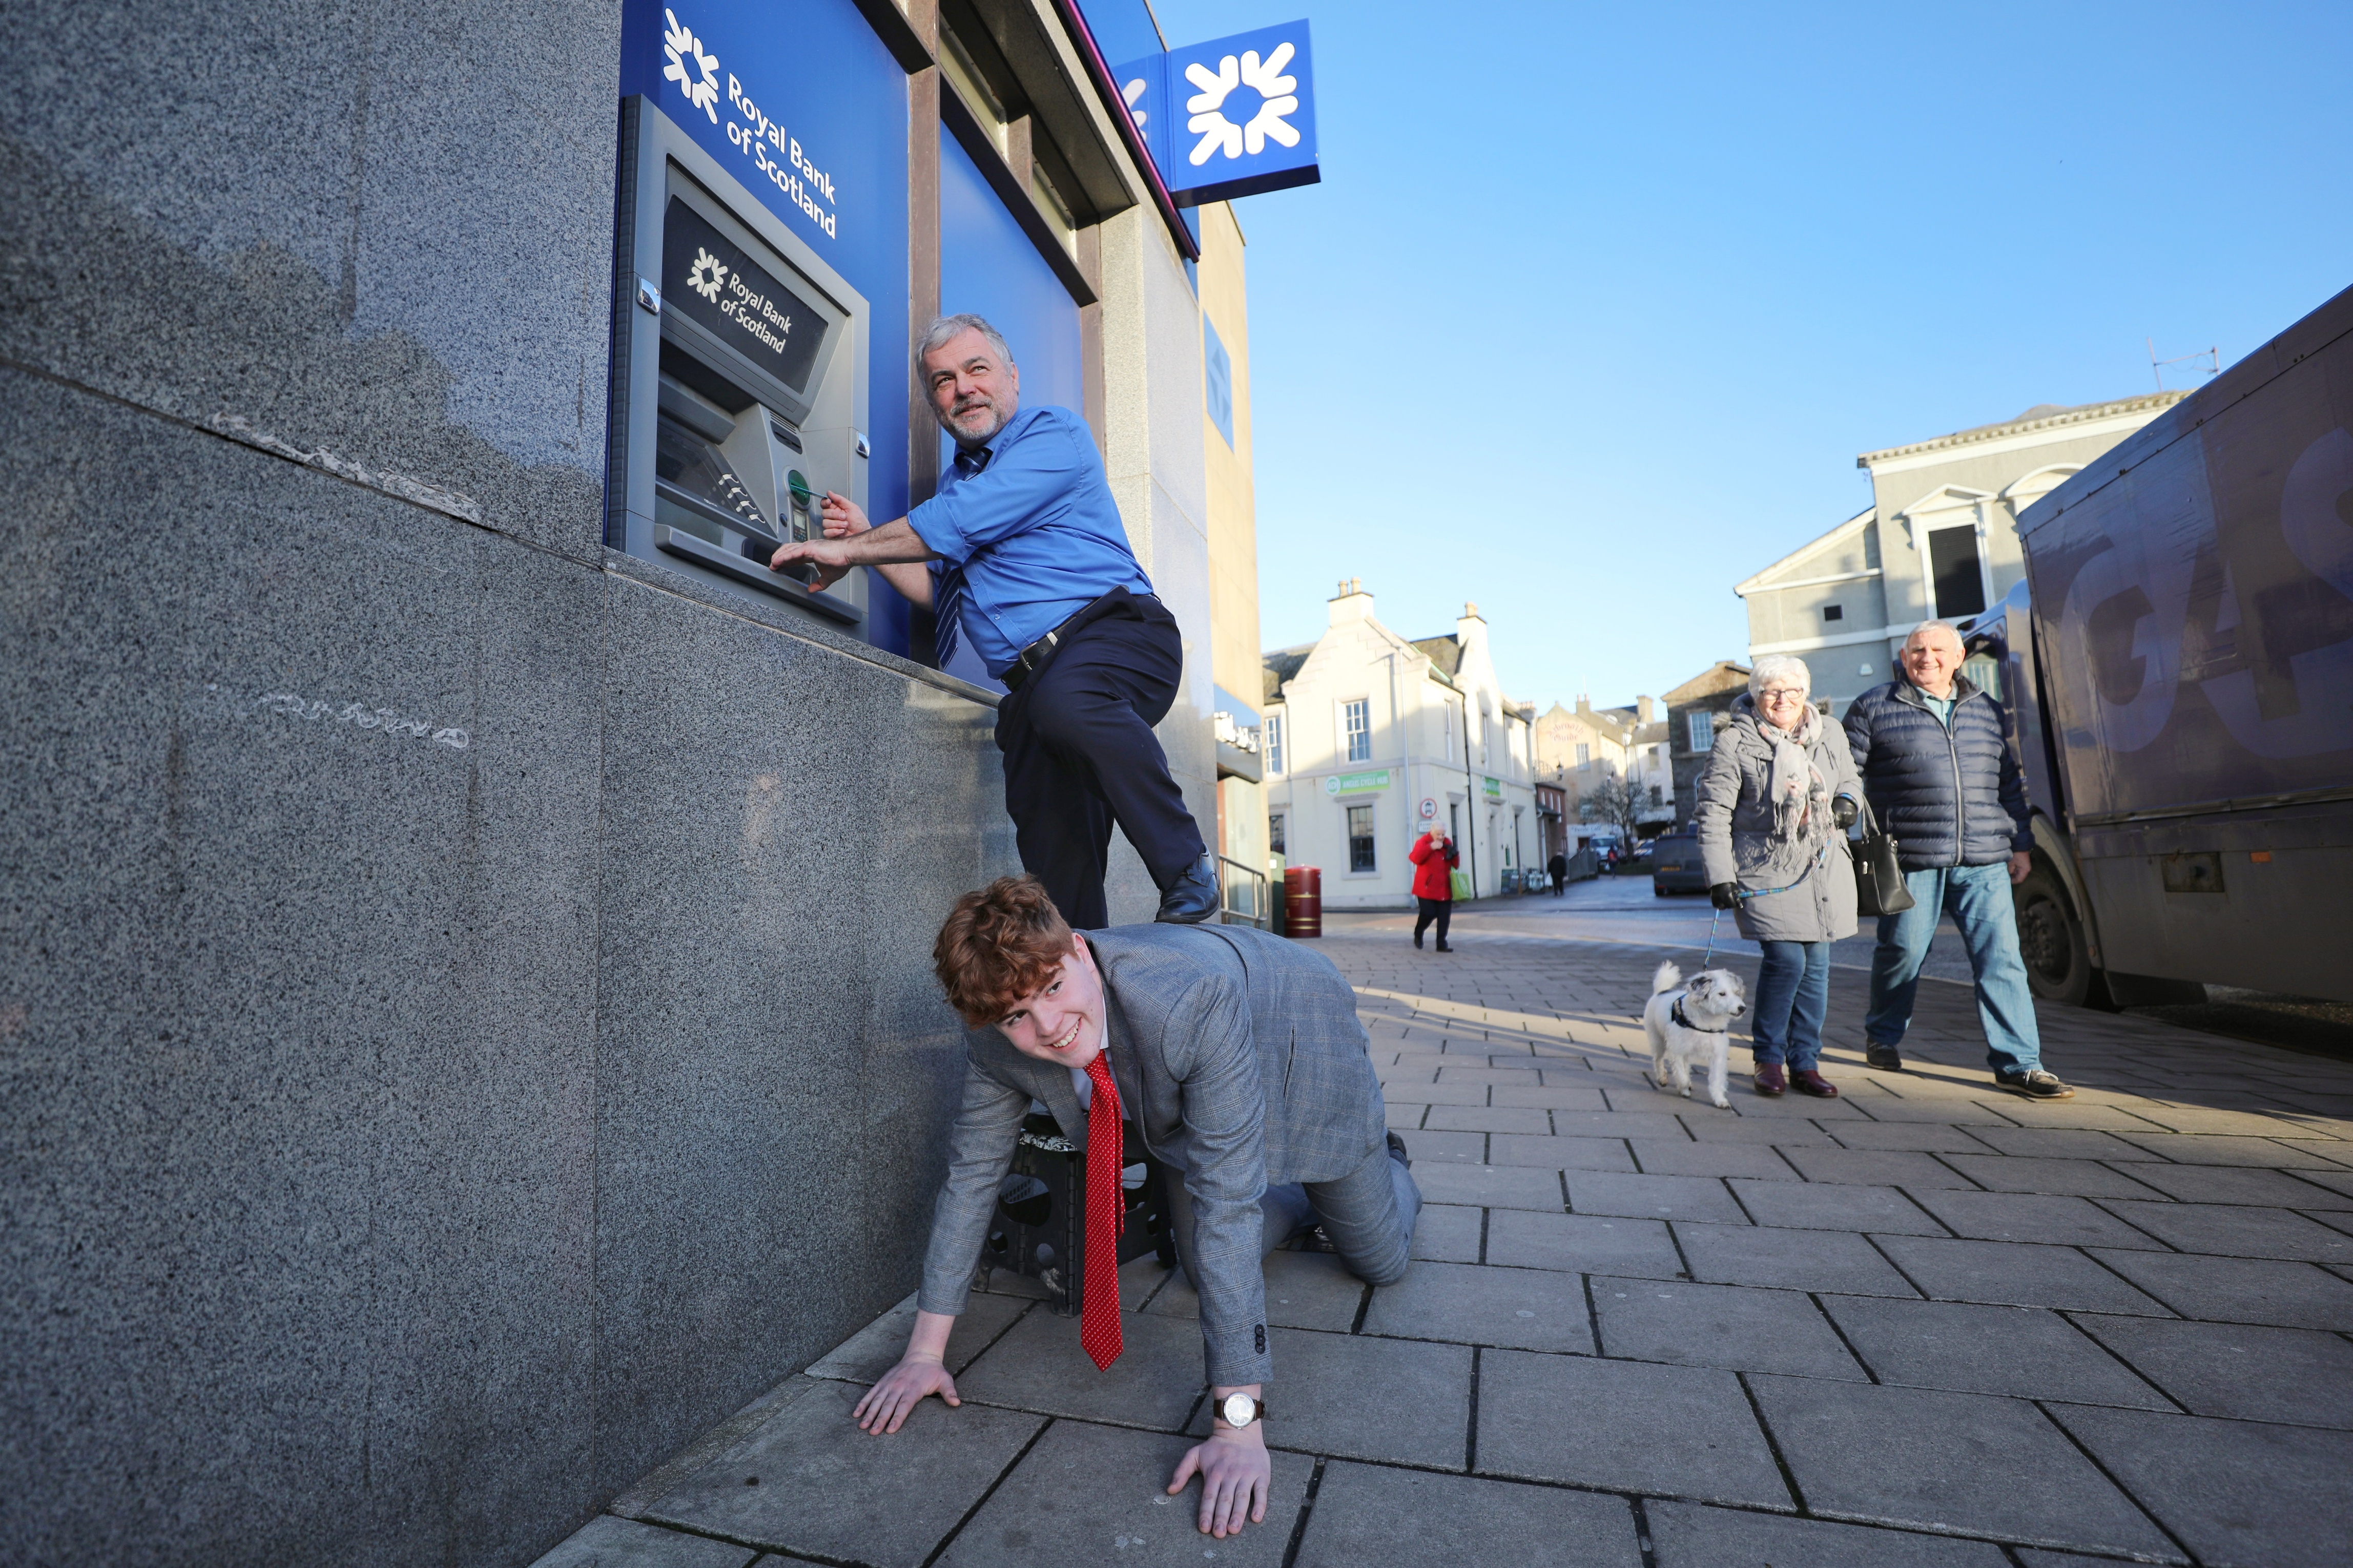 Tele reporters Kenny MacDonald and Matteo Bell attempting to use the cash machine.